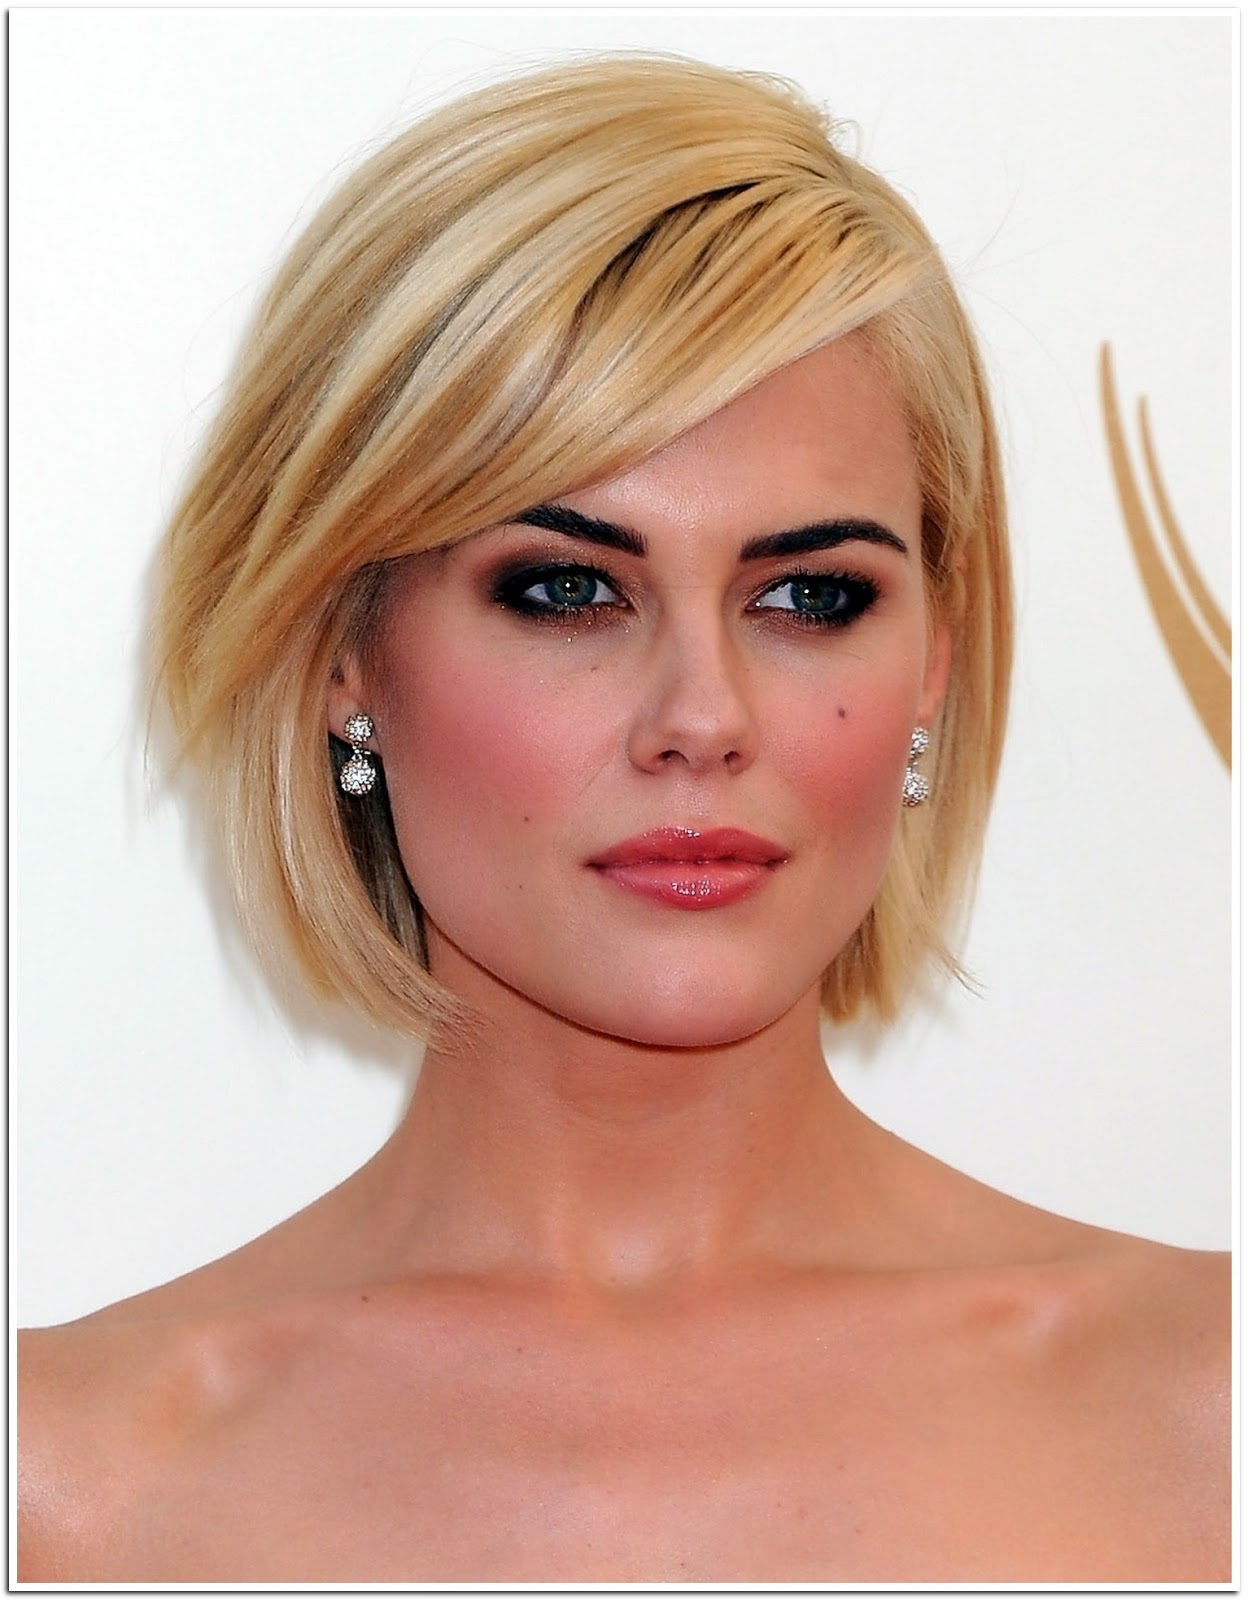 12 Formal Hairstyles For Short Hair You Can't Do Without Pertaining To Short Haircuts For Curvy Women (View 22 of 25)